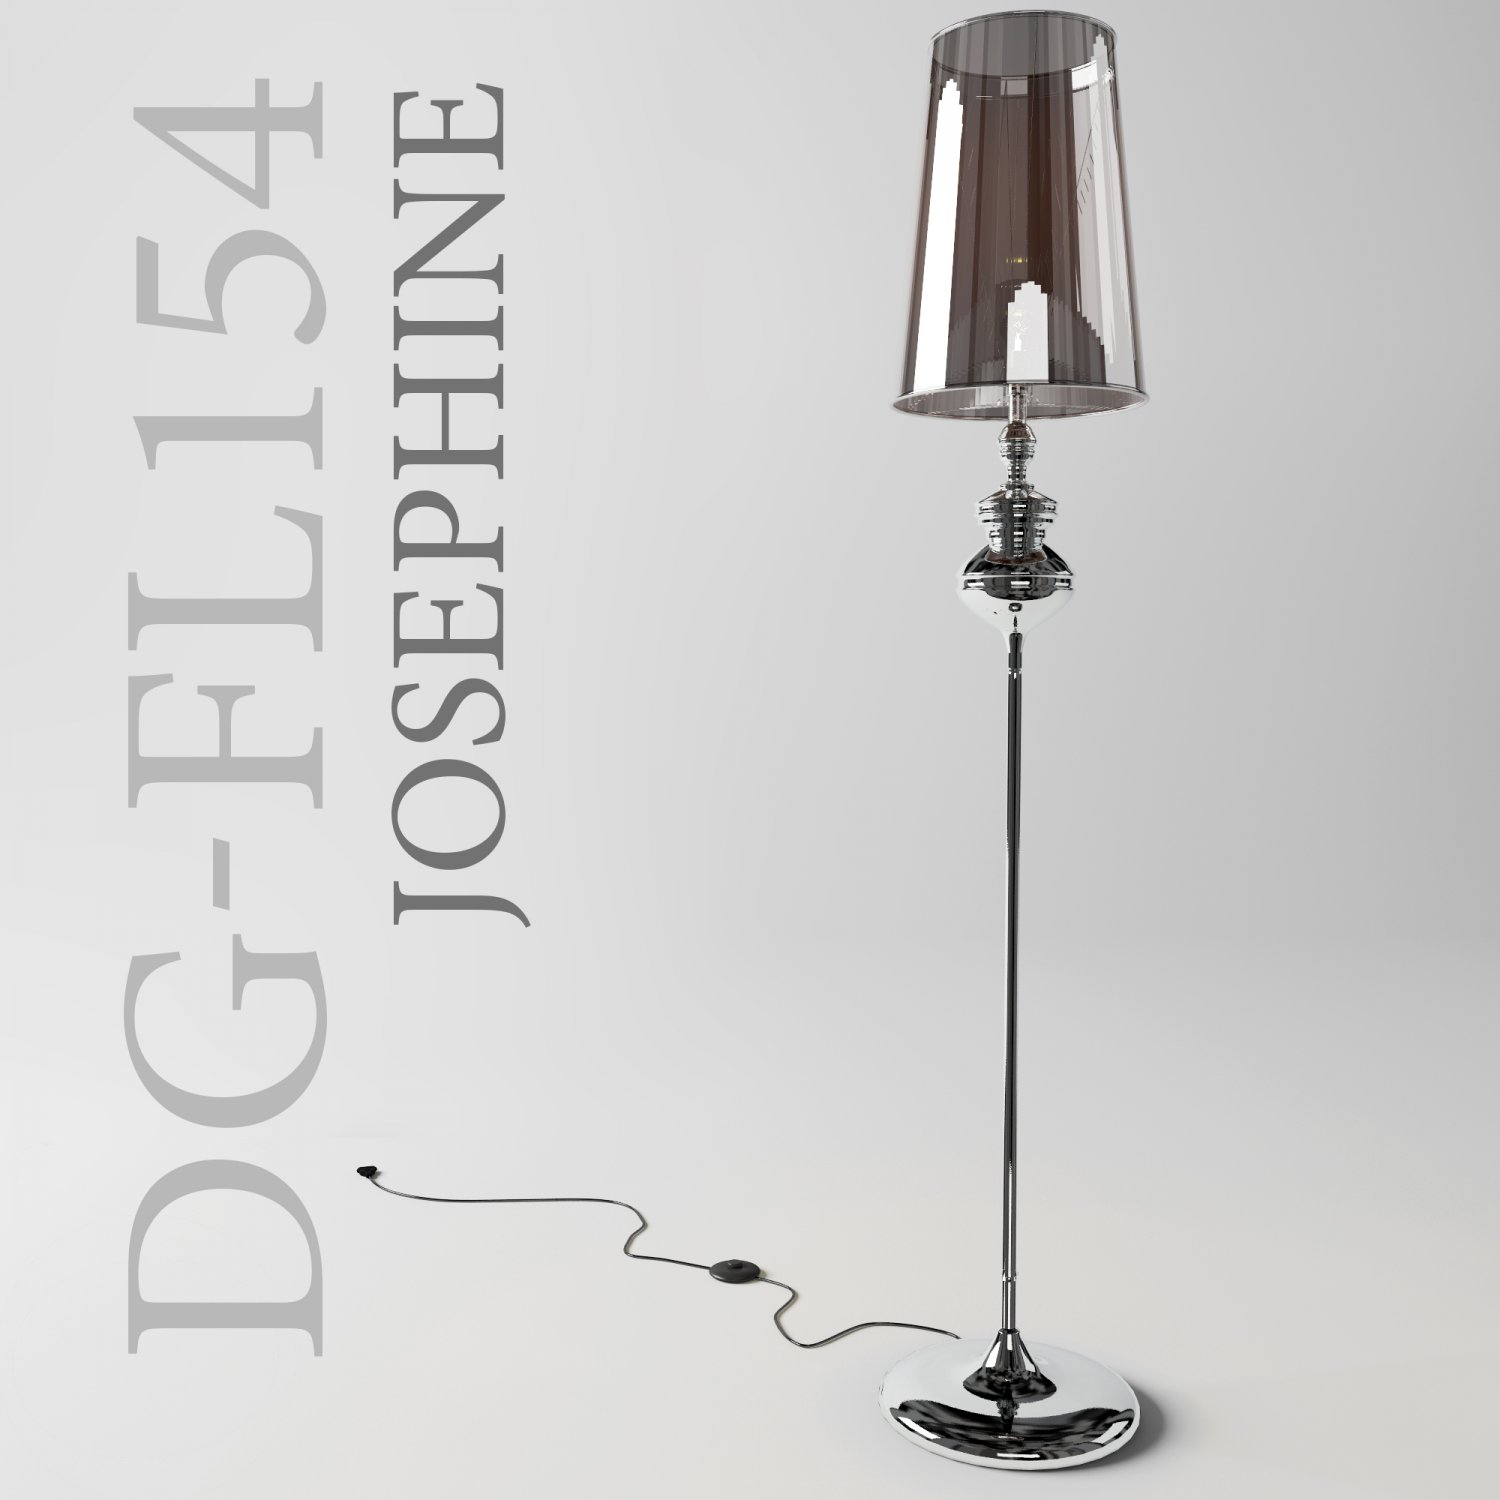 Dg Home Dg Home Josephine 3d Model In Floor Lamps 3dexport